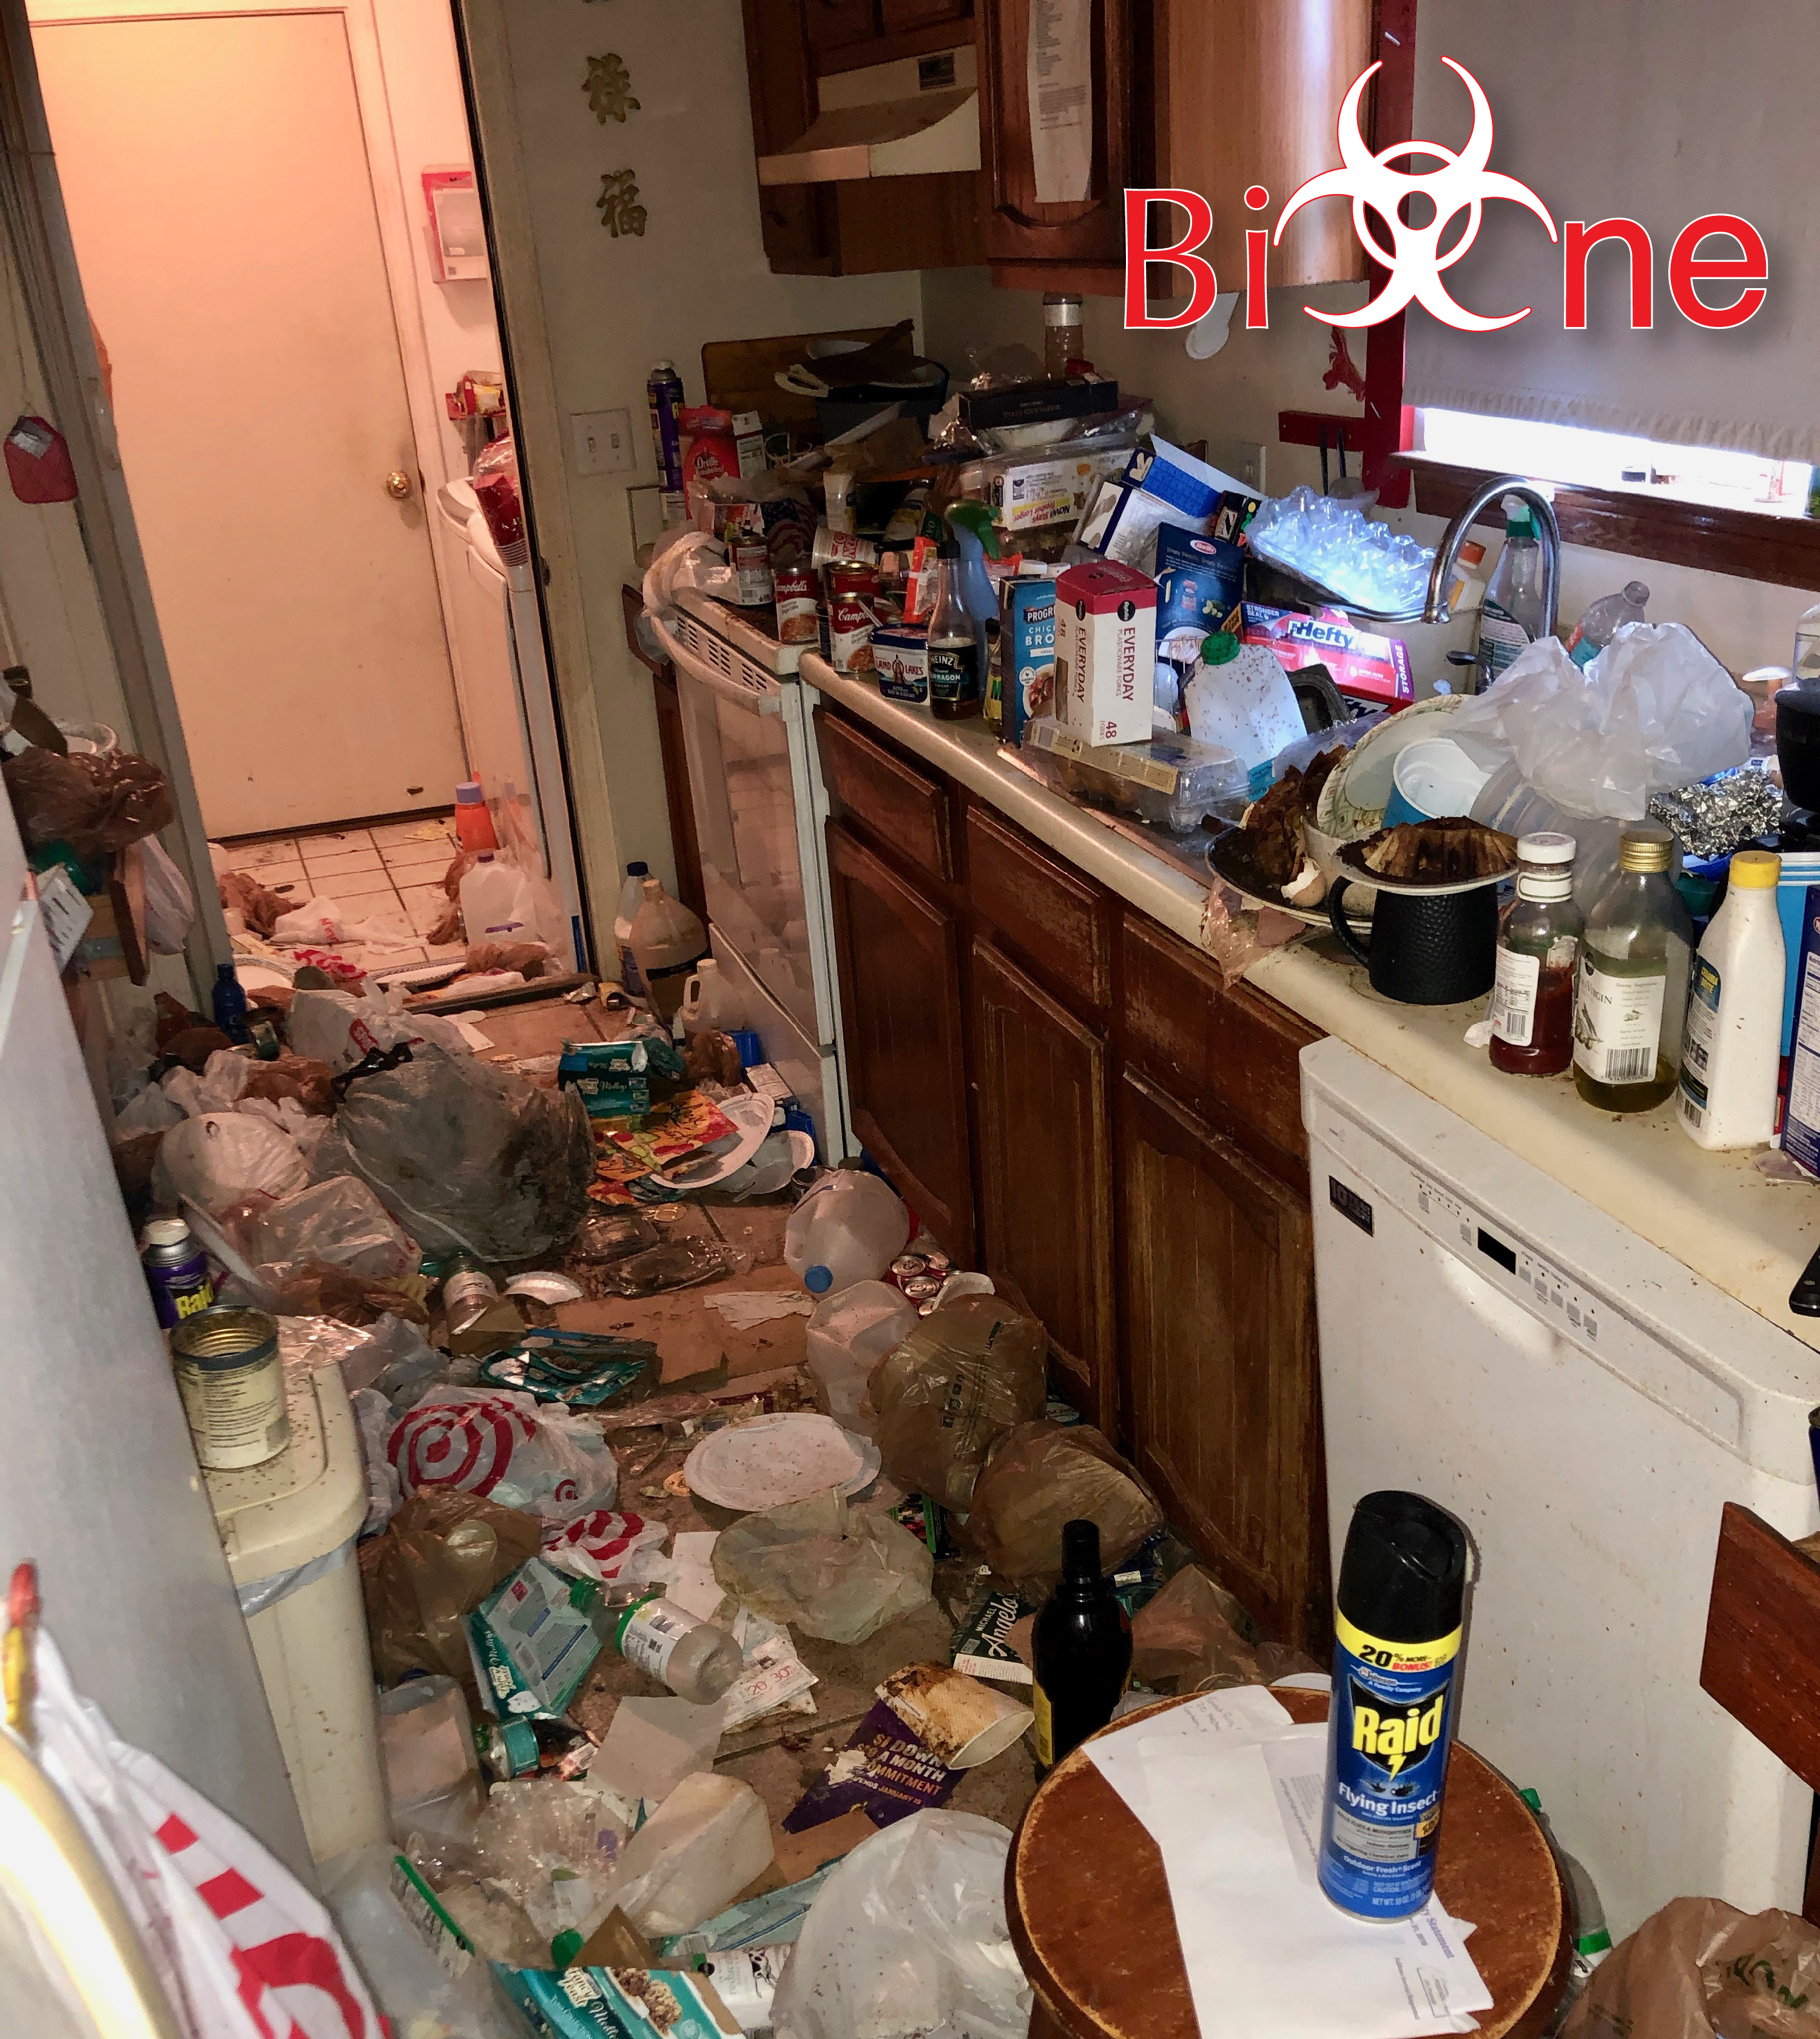 Properties impacted by hoarding pose several risk factors for the victims.